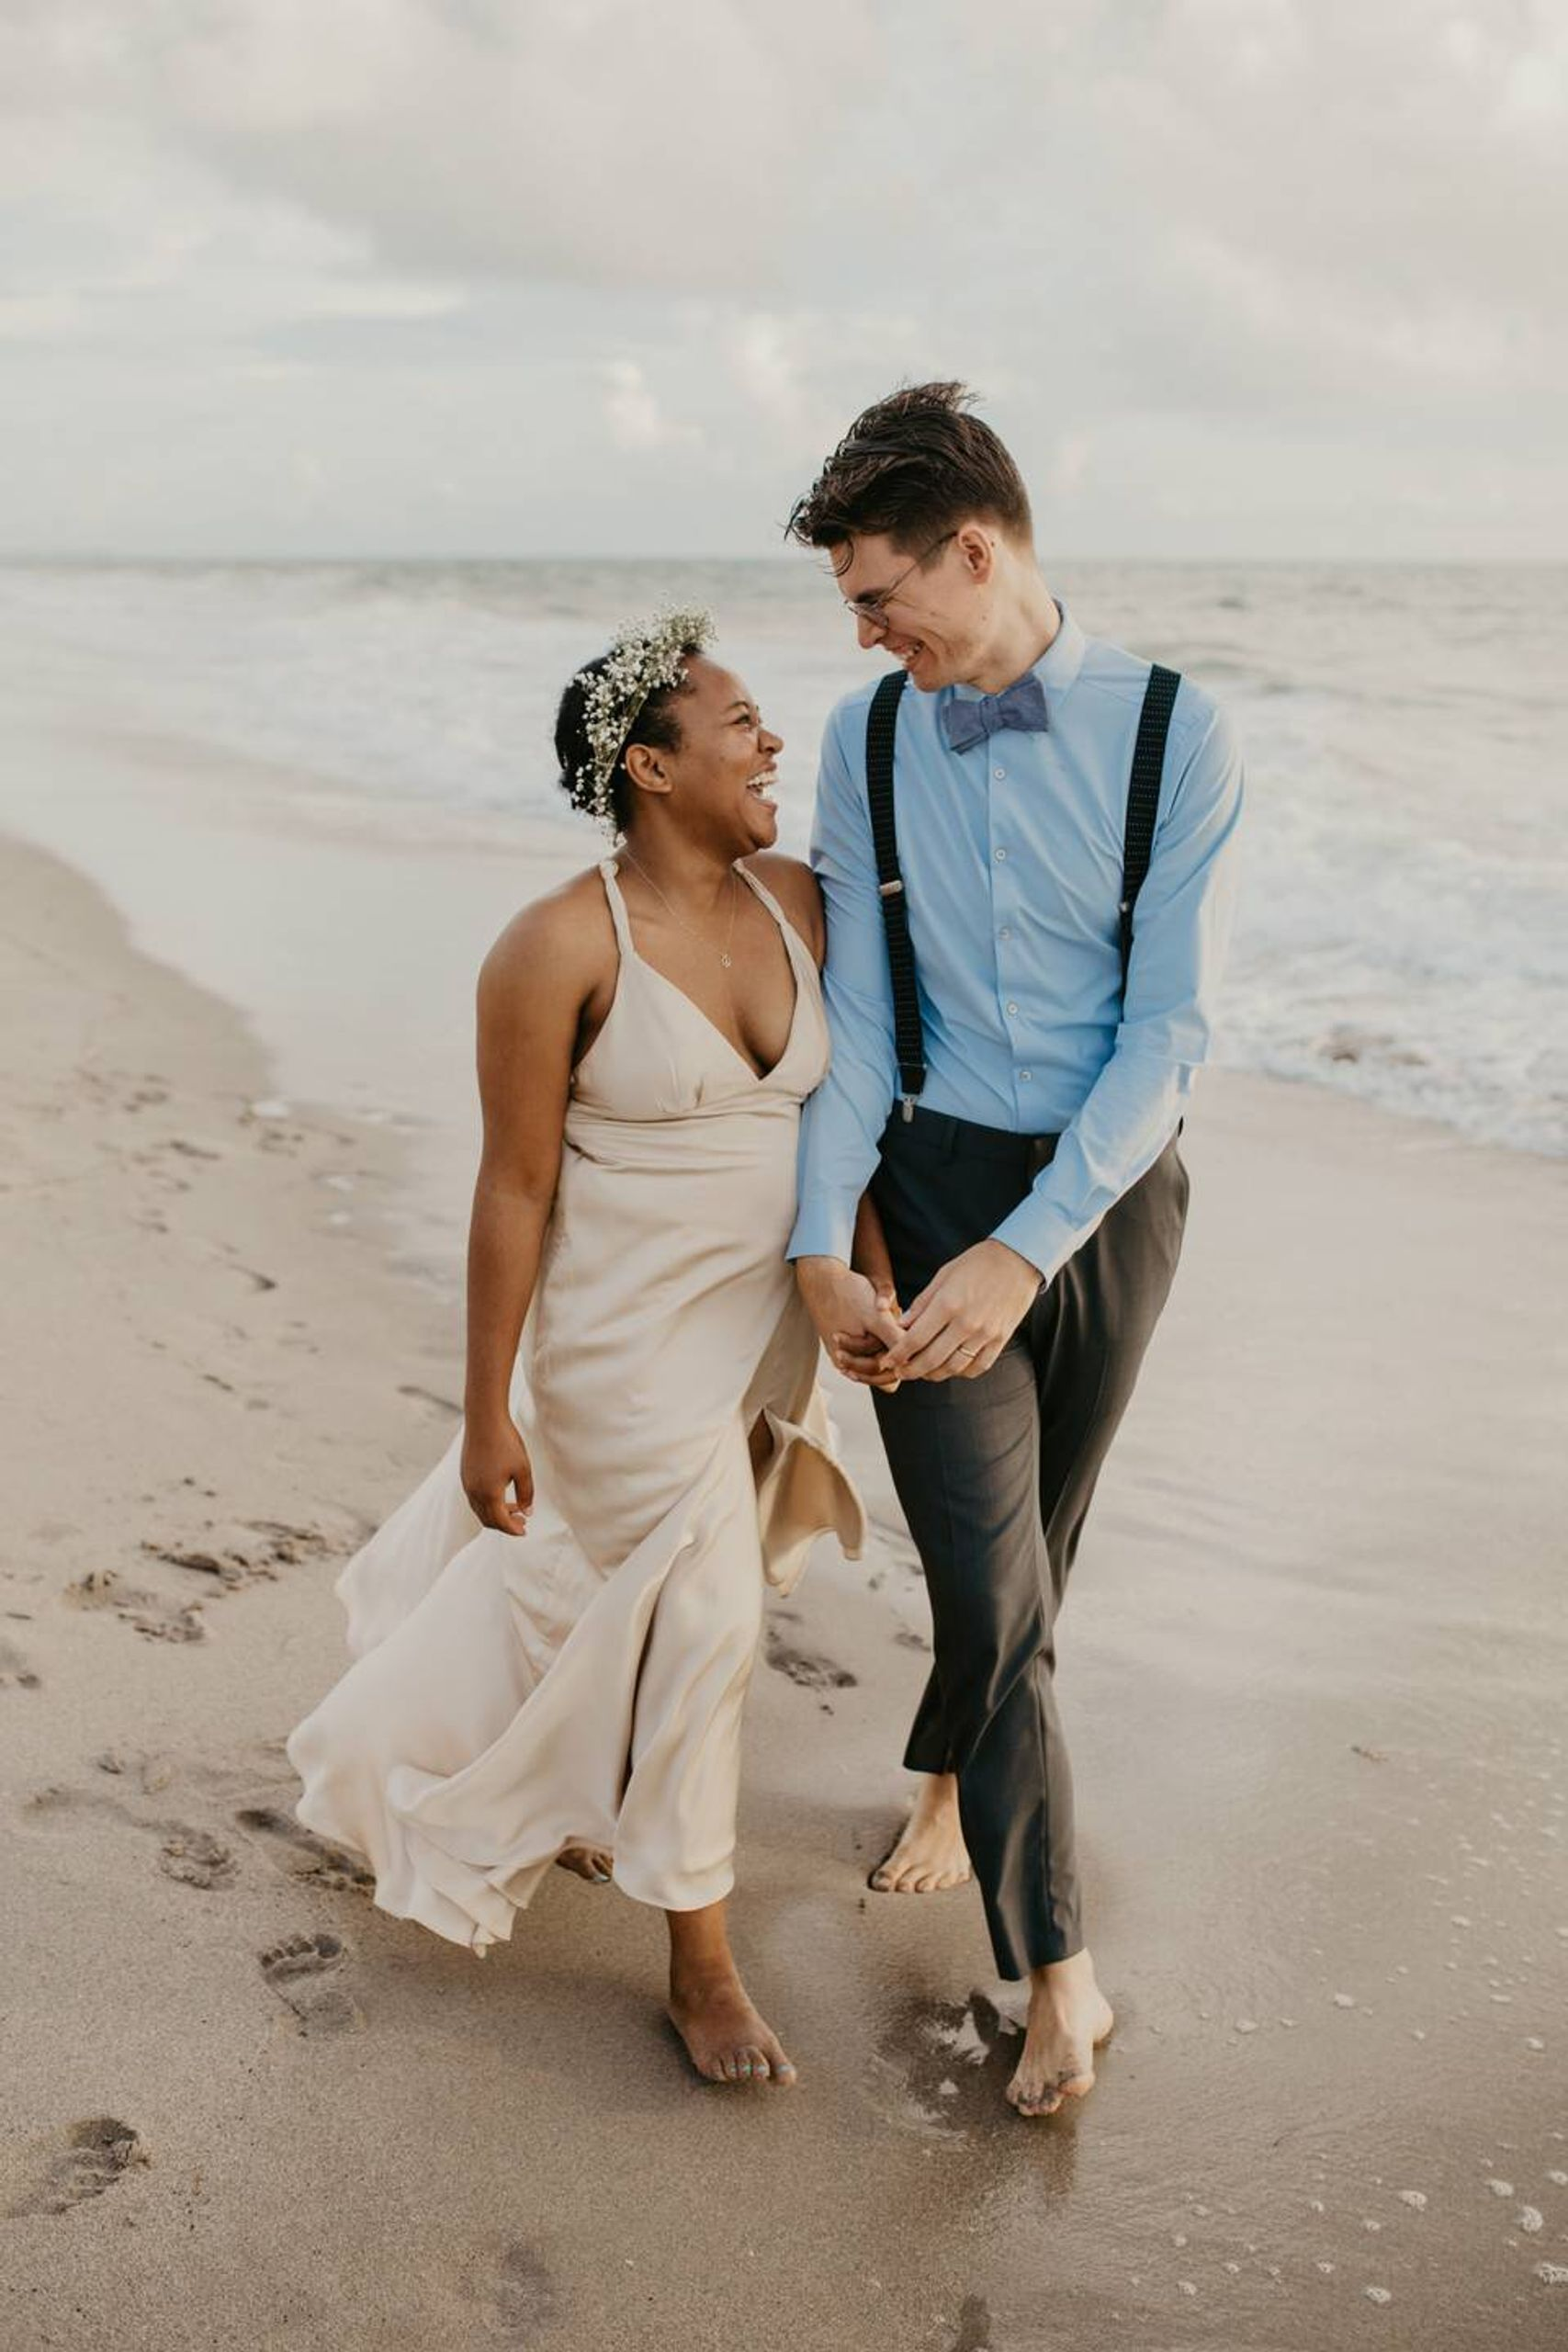 A young interracial couple walks on the beach, looking into each other's eyes and laughing. REWIRE PBS Our Future Love interracial couple